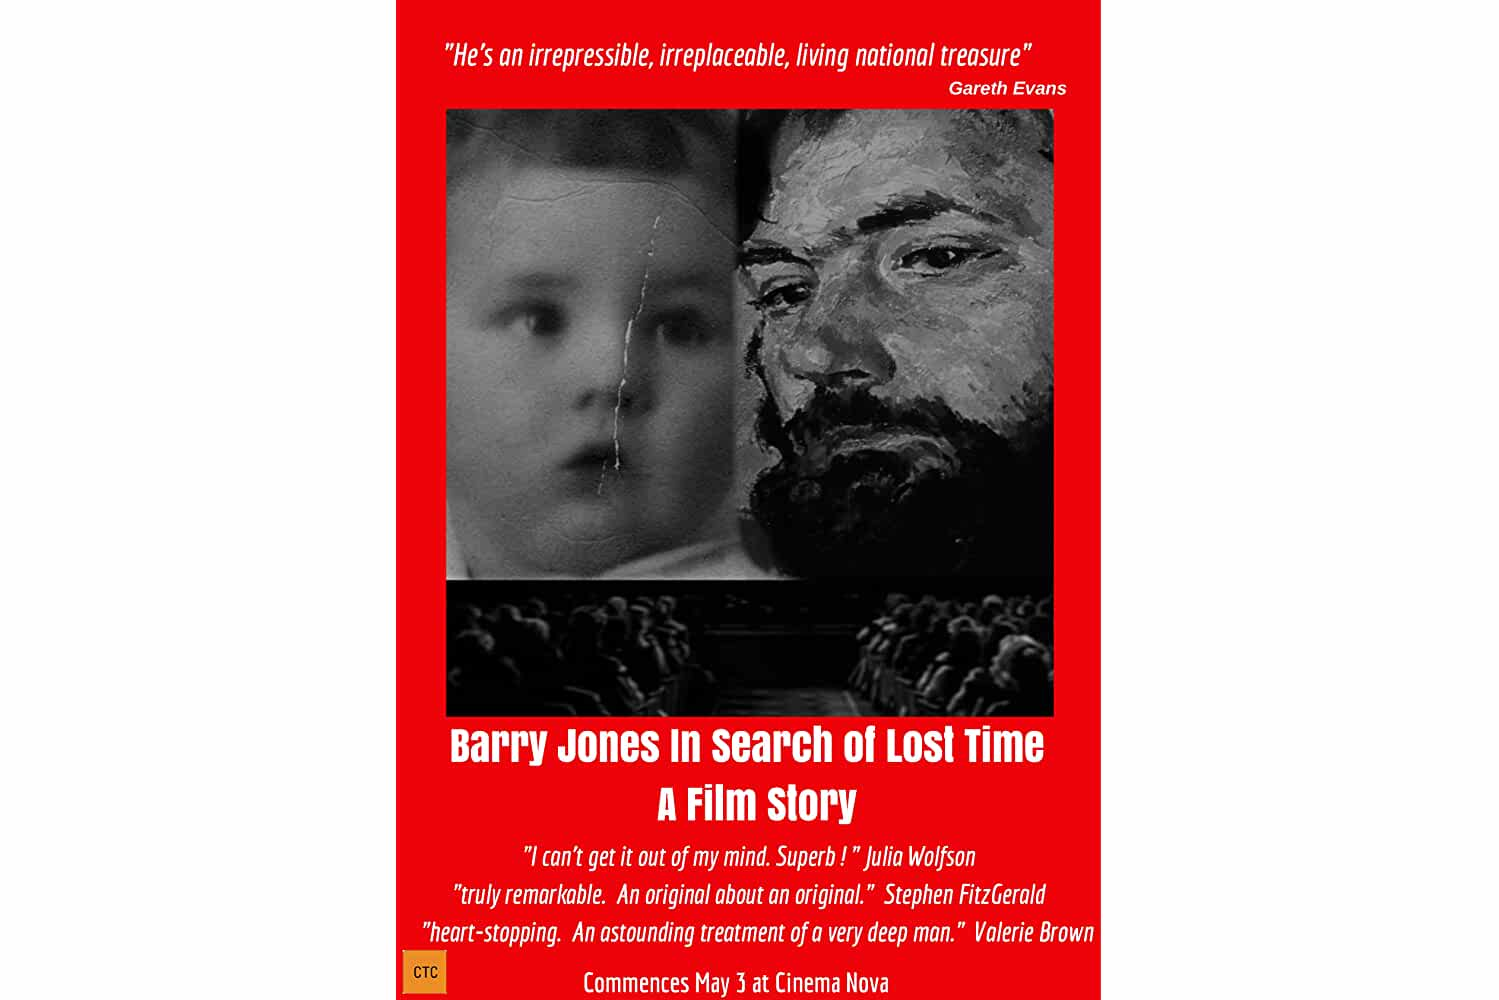 Barry Jones In Search of Lost Time - A Film Story (2018)